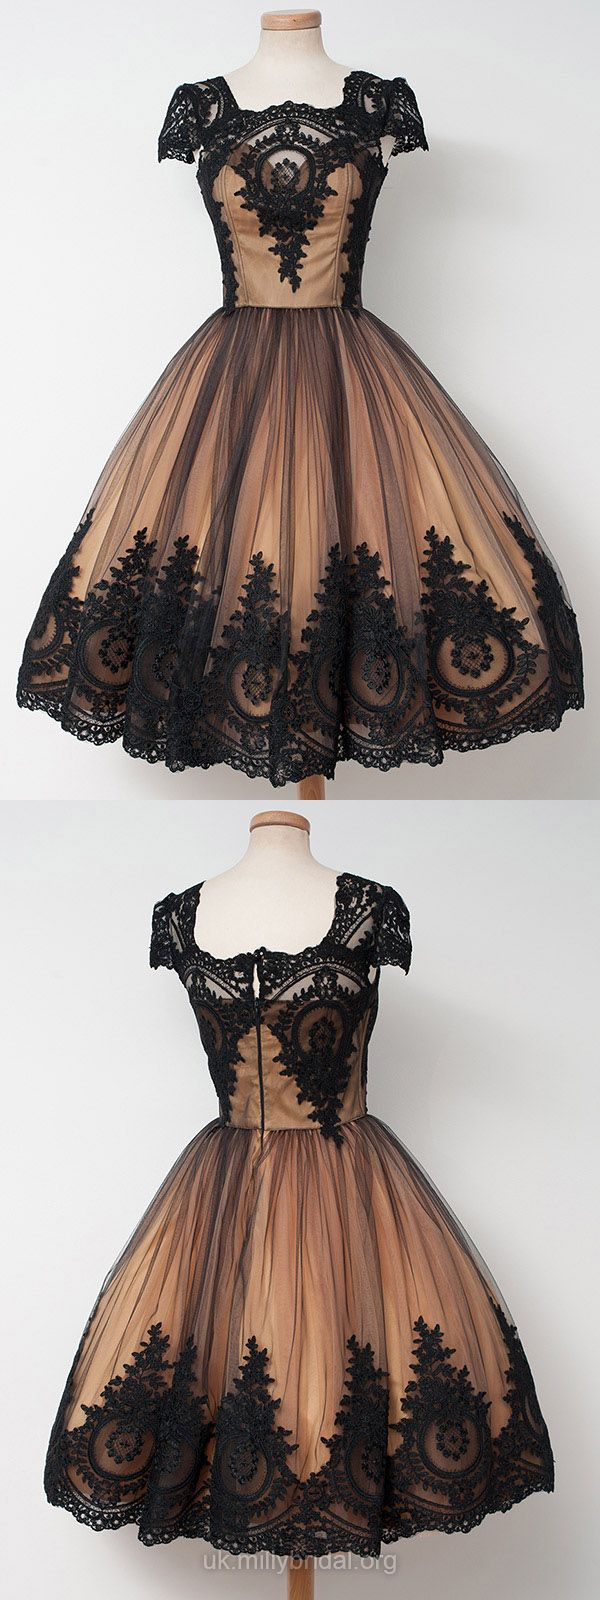 Vintage Prom Dresses Short, Lace Prom Dresses Ball Gown 2018, Square Neckline Cocktail Dresses Tulle, Tea-length Homecoming Party Dresses Modest